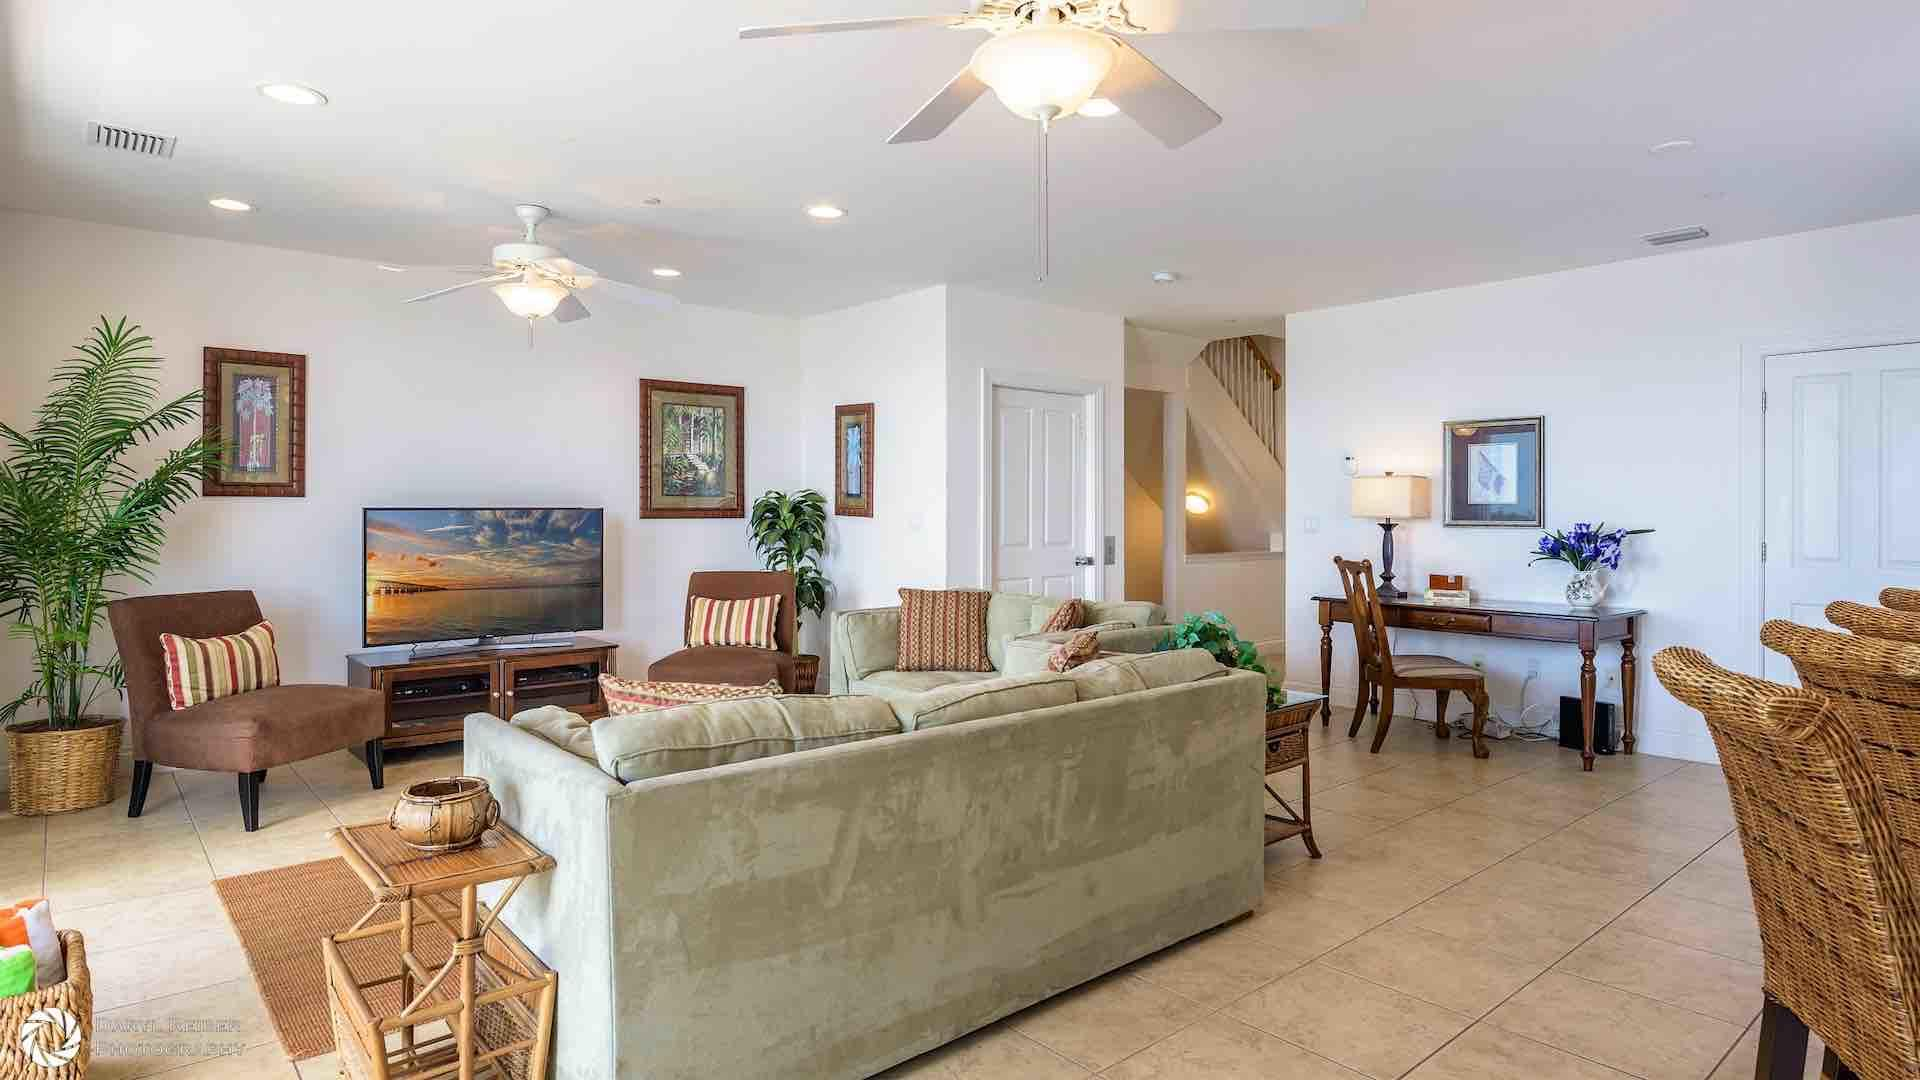 The living area has plenty of room for everyone, with a large HDTV and comfortable seating options...